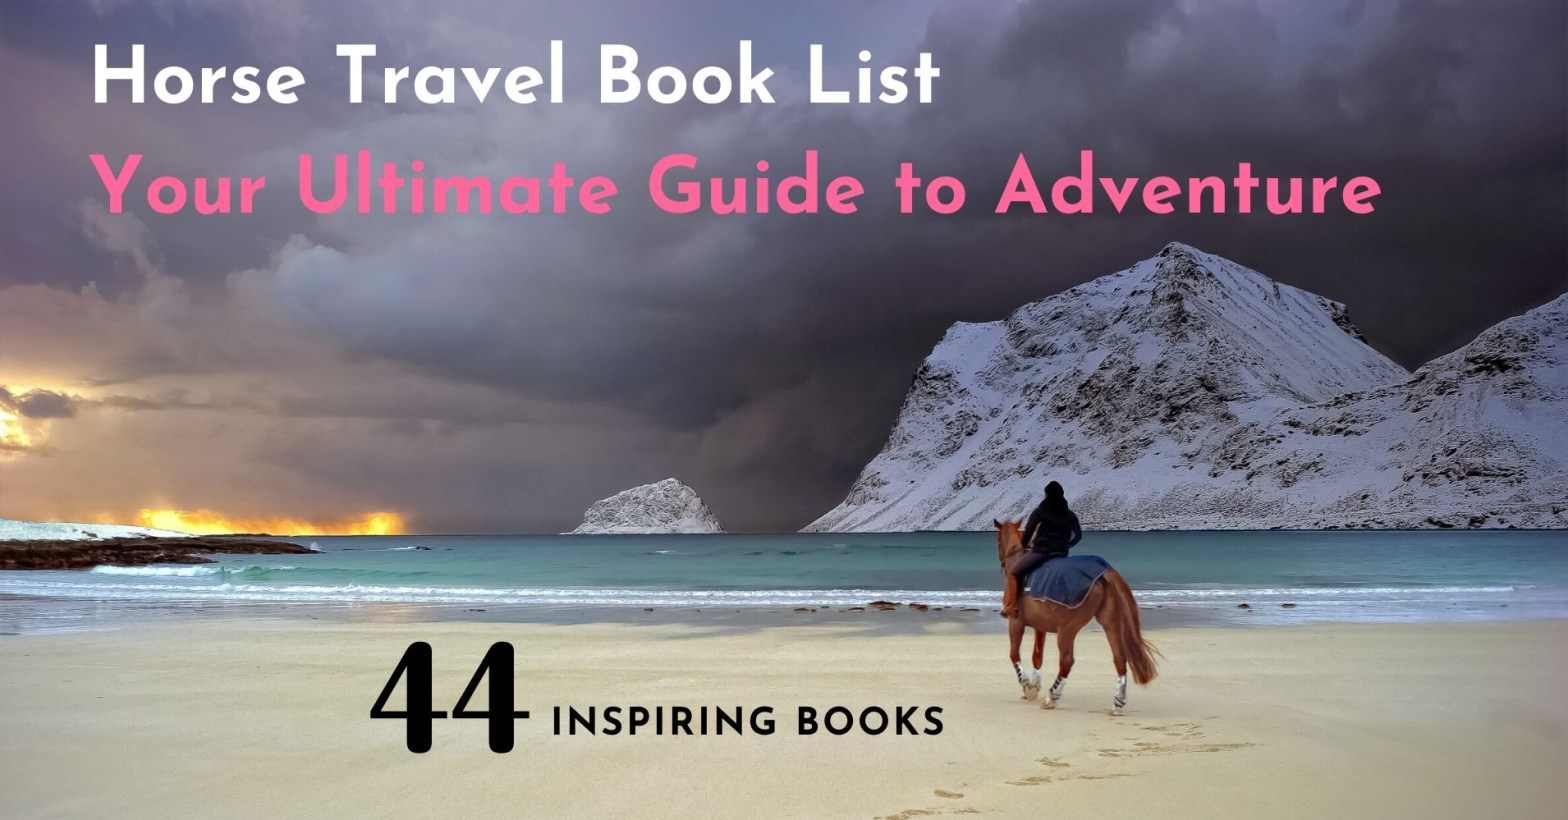 a horse rider on a beach facing dramatic scenery over the sea. This picture advertises our list of 44 inspirational adventure books